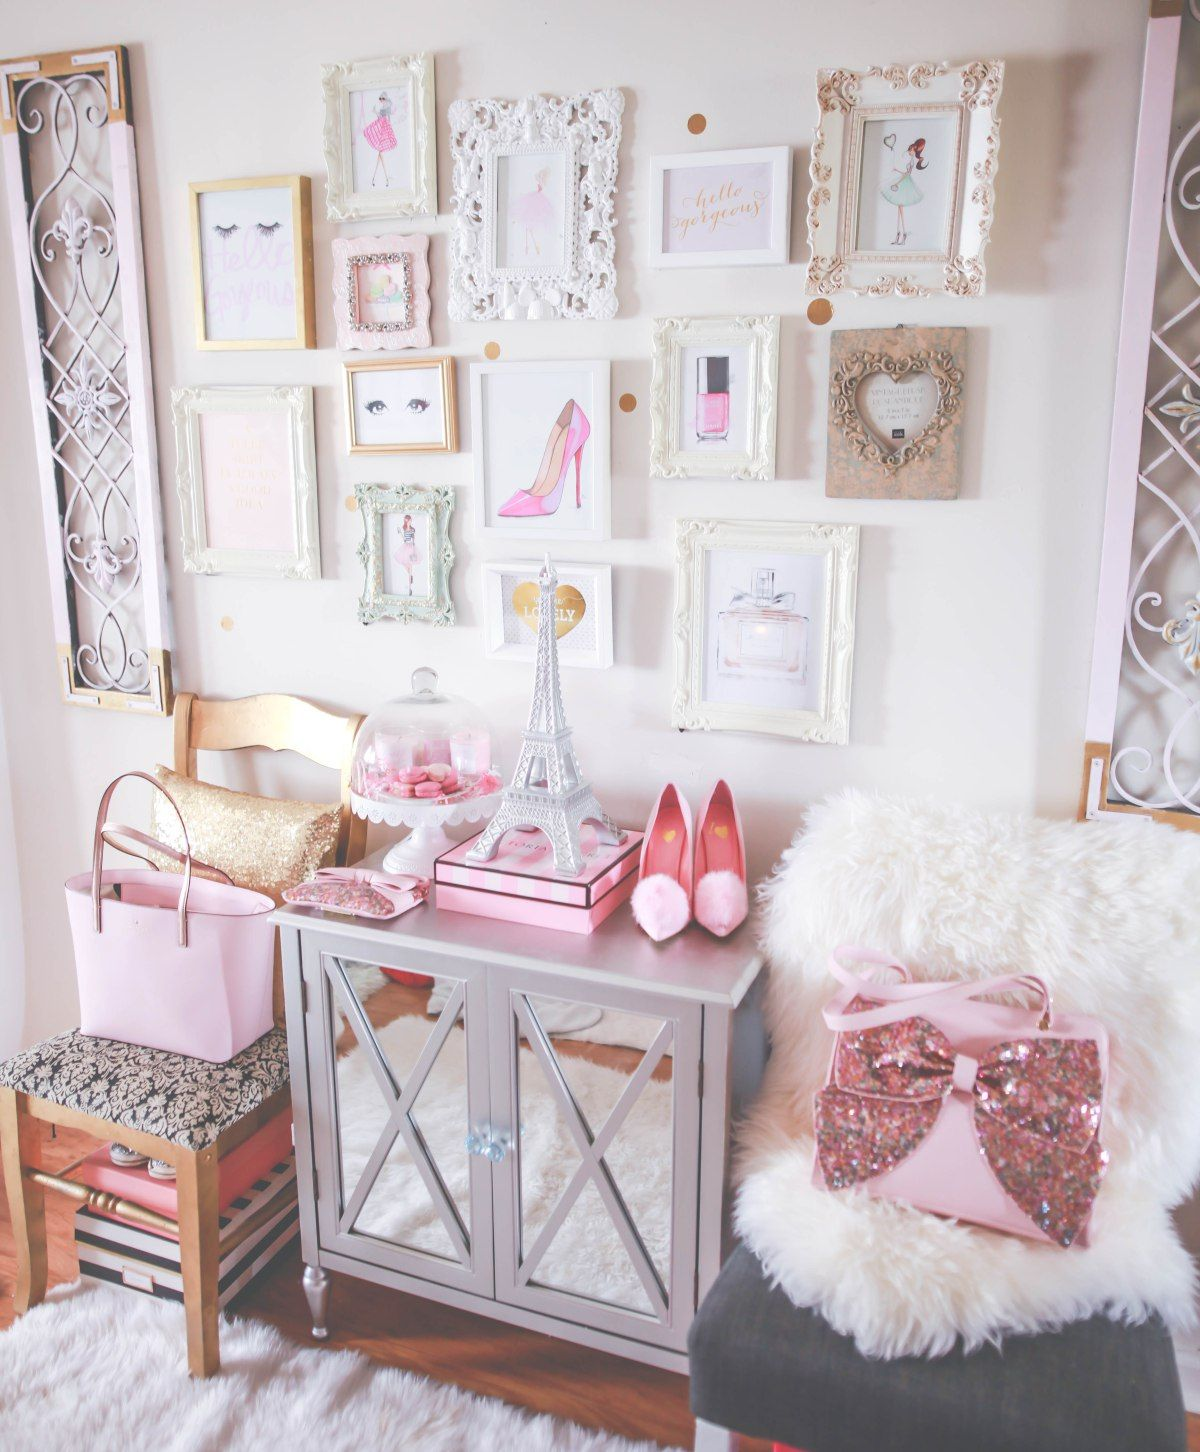 Bedroom Design Pictures Bedroom Curtains Purple Cool Bedroom Bins Bedroom Accessories List: How To Make Your Workspace Pretty & Girly